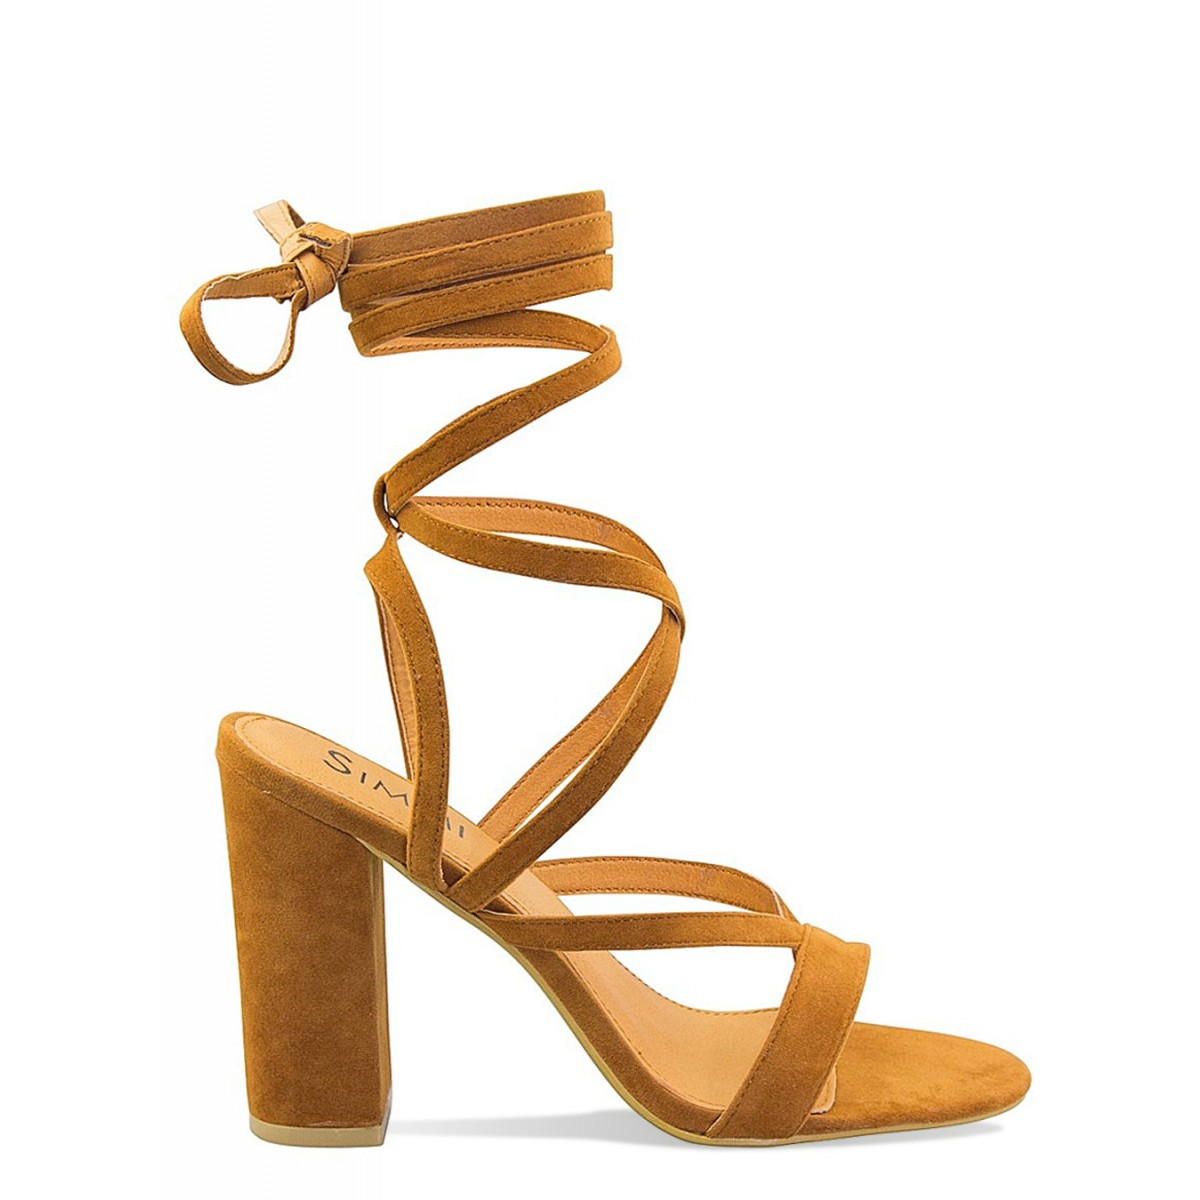 Pia Tan Lace Up Block Heels : Simmi Shoes - Love Your Shoes!